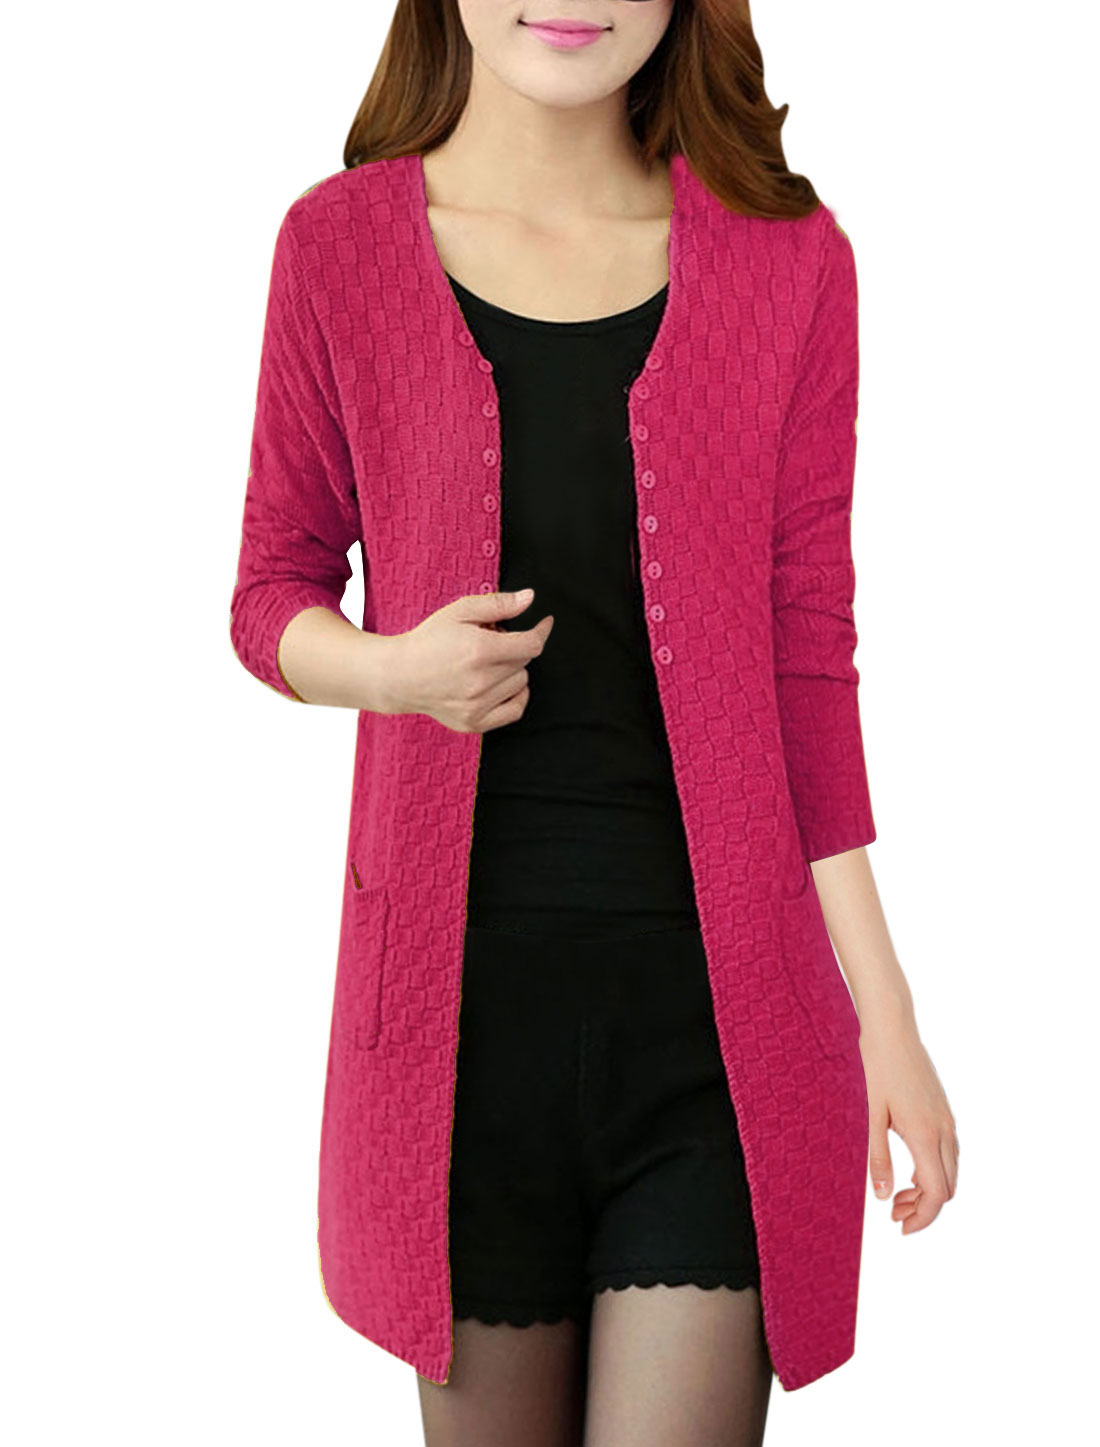 Lady Front Opening Buttons Decor Casual Knitting Cardigan Fuchsia S